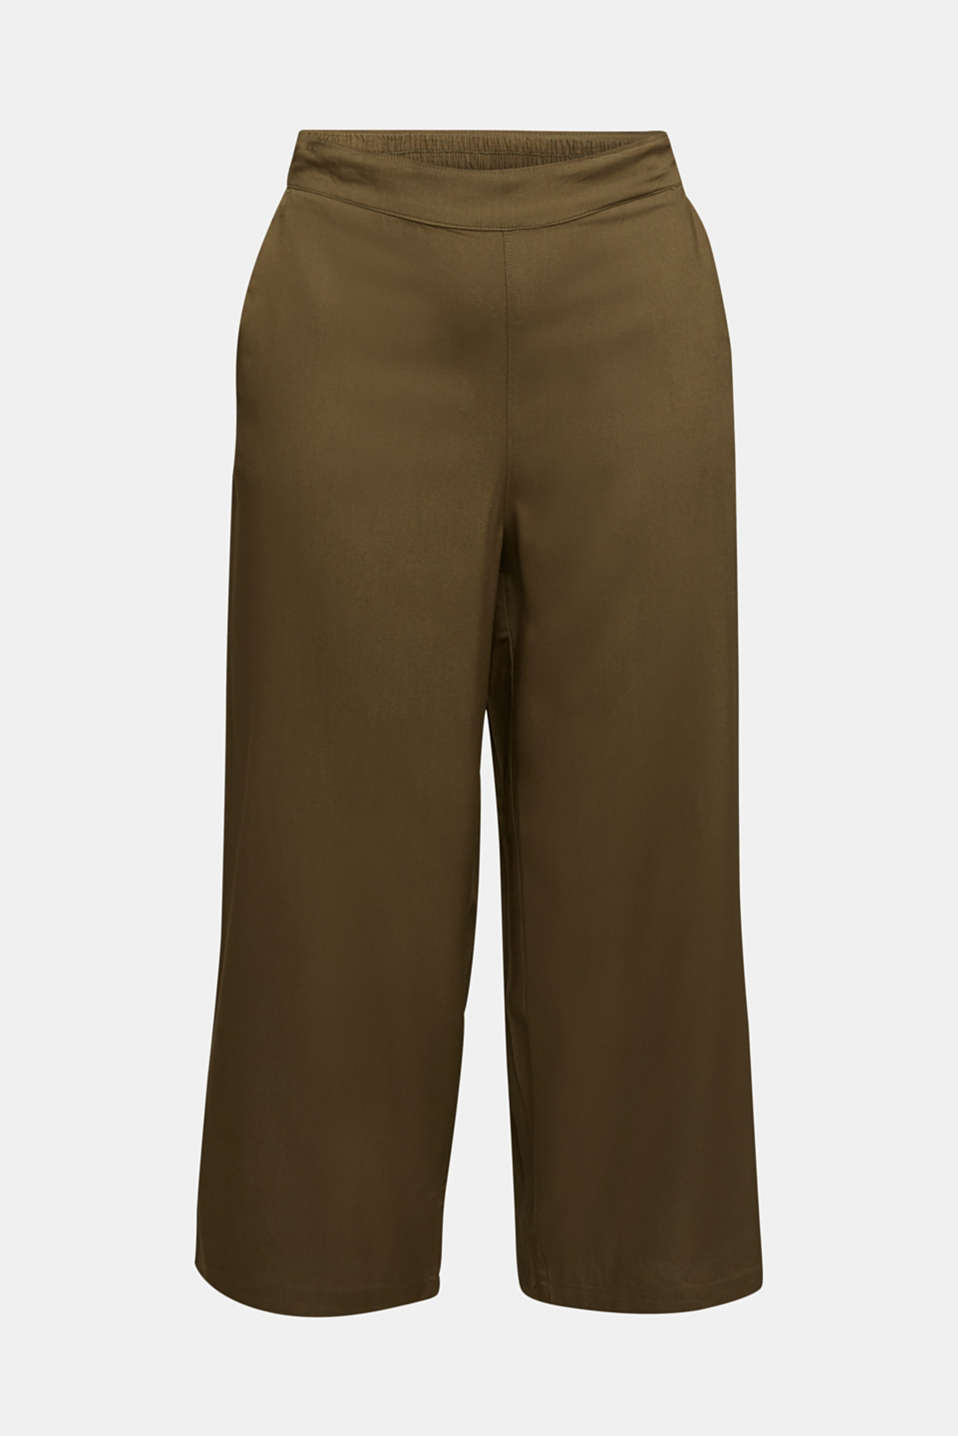 Culottes with an elasticated waistband, KHAKI GREEN, detail image number 5